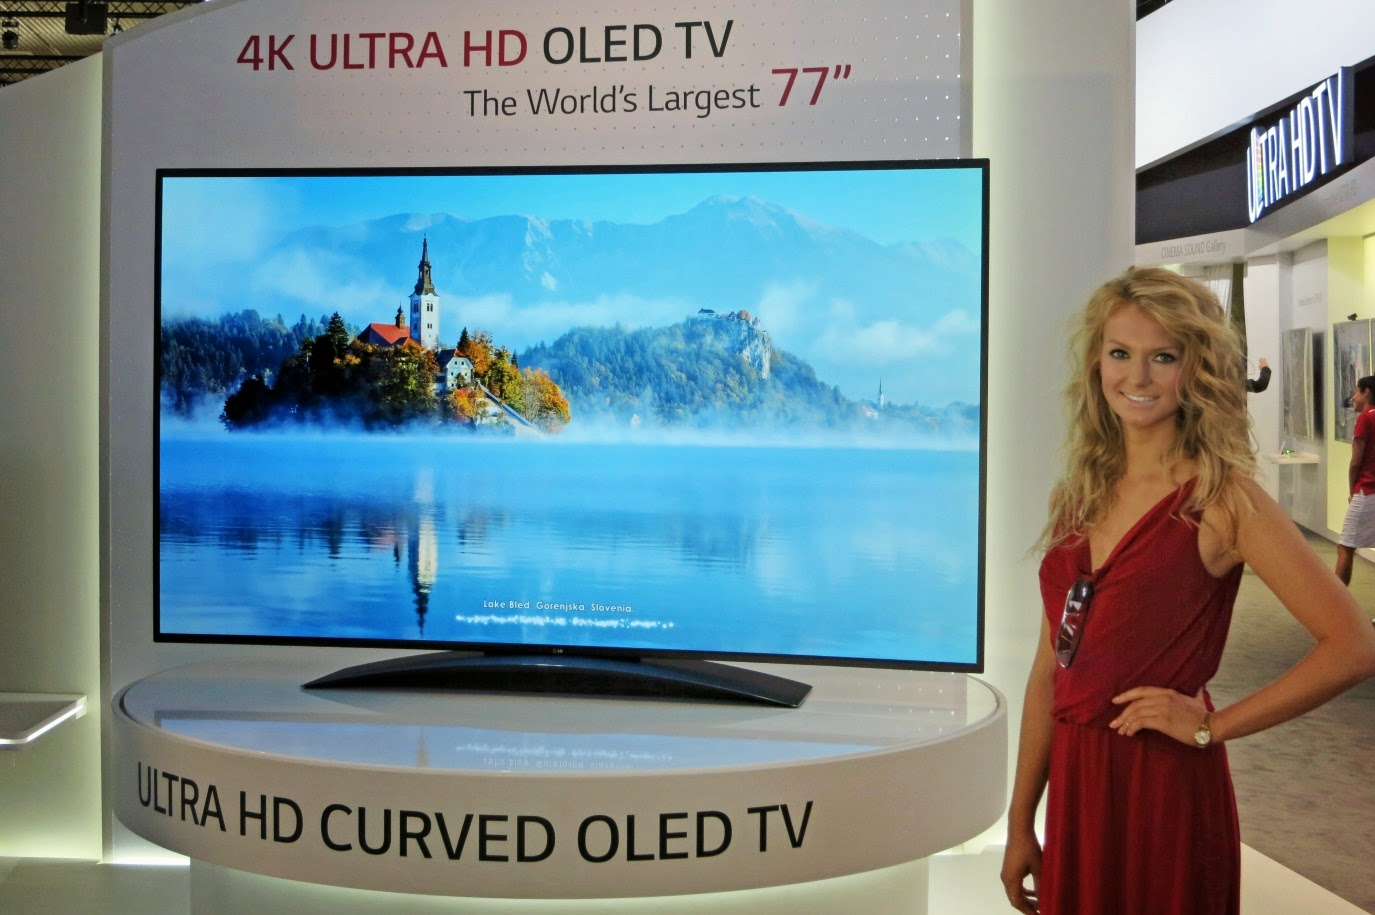 Sony ULTRA HD OLED TV